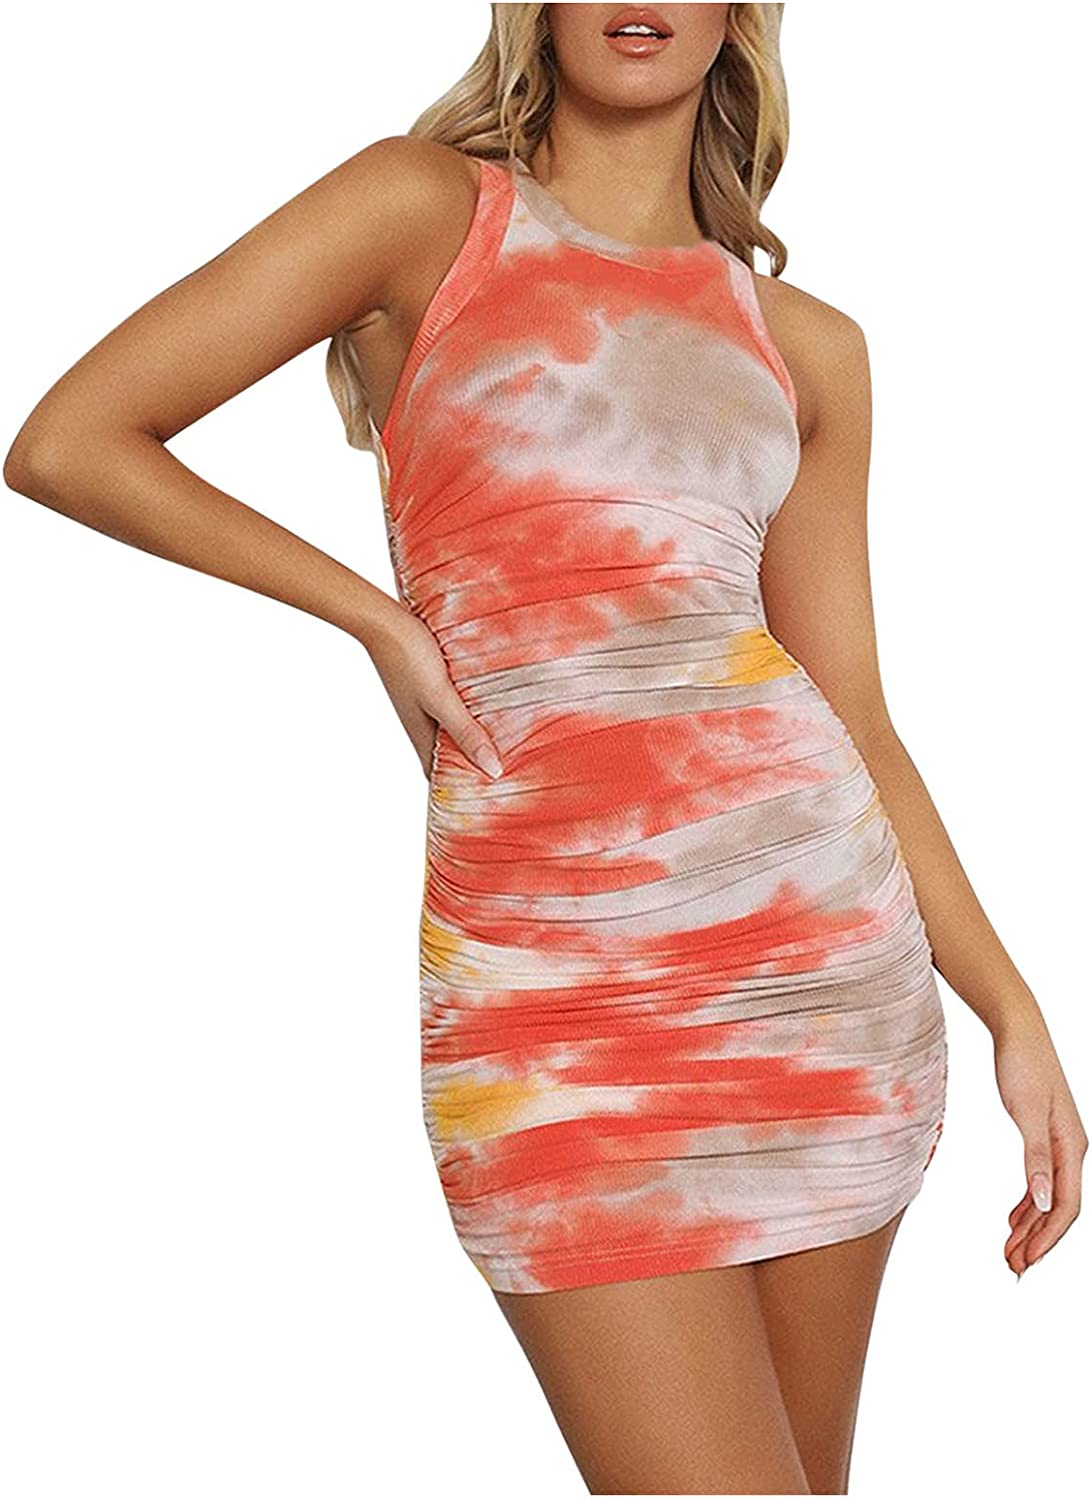 Maryia Women's Tie Dye Dresses Summer 2021 Casual Sleeveless Ruched Soft Comfy Crew Neck Elegant Bodycon Sundress